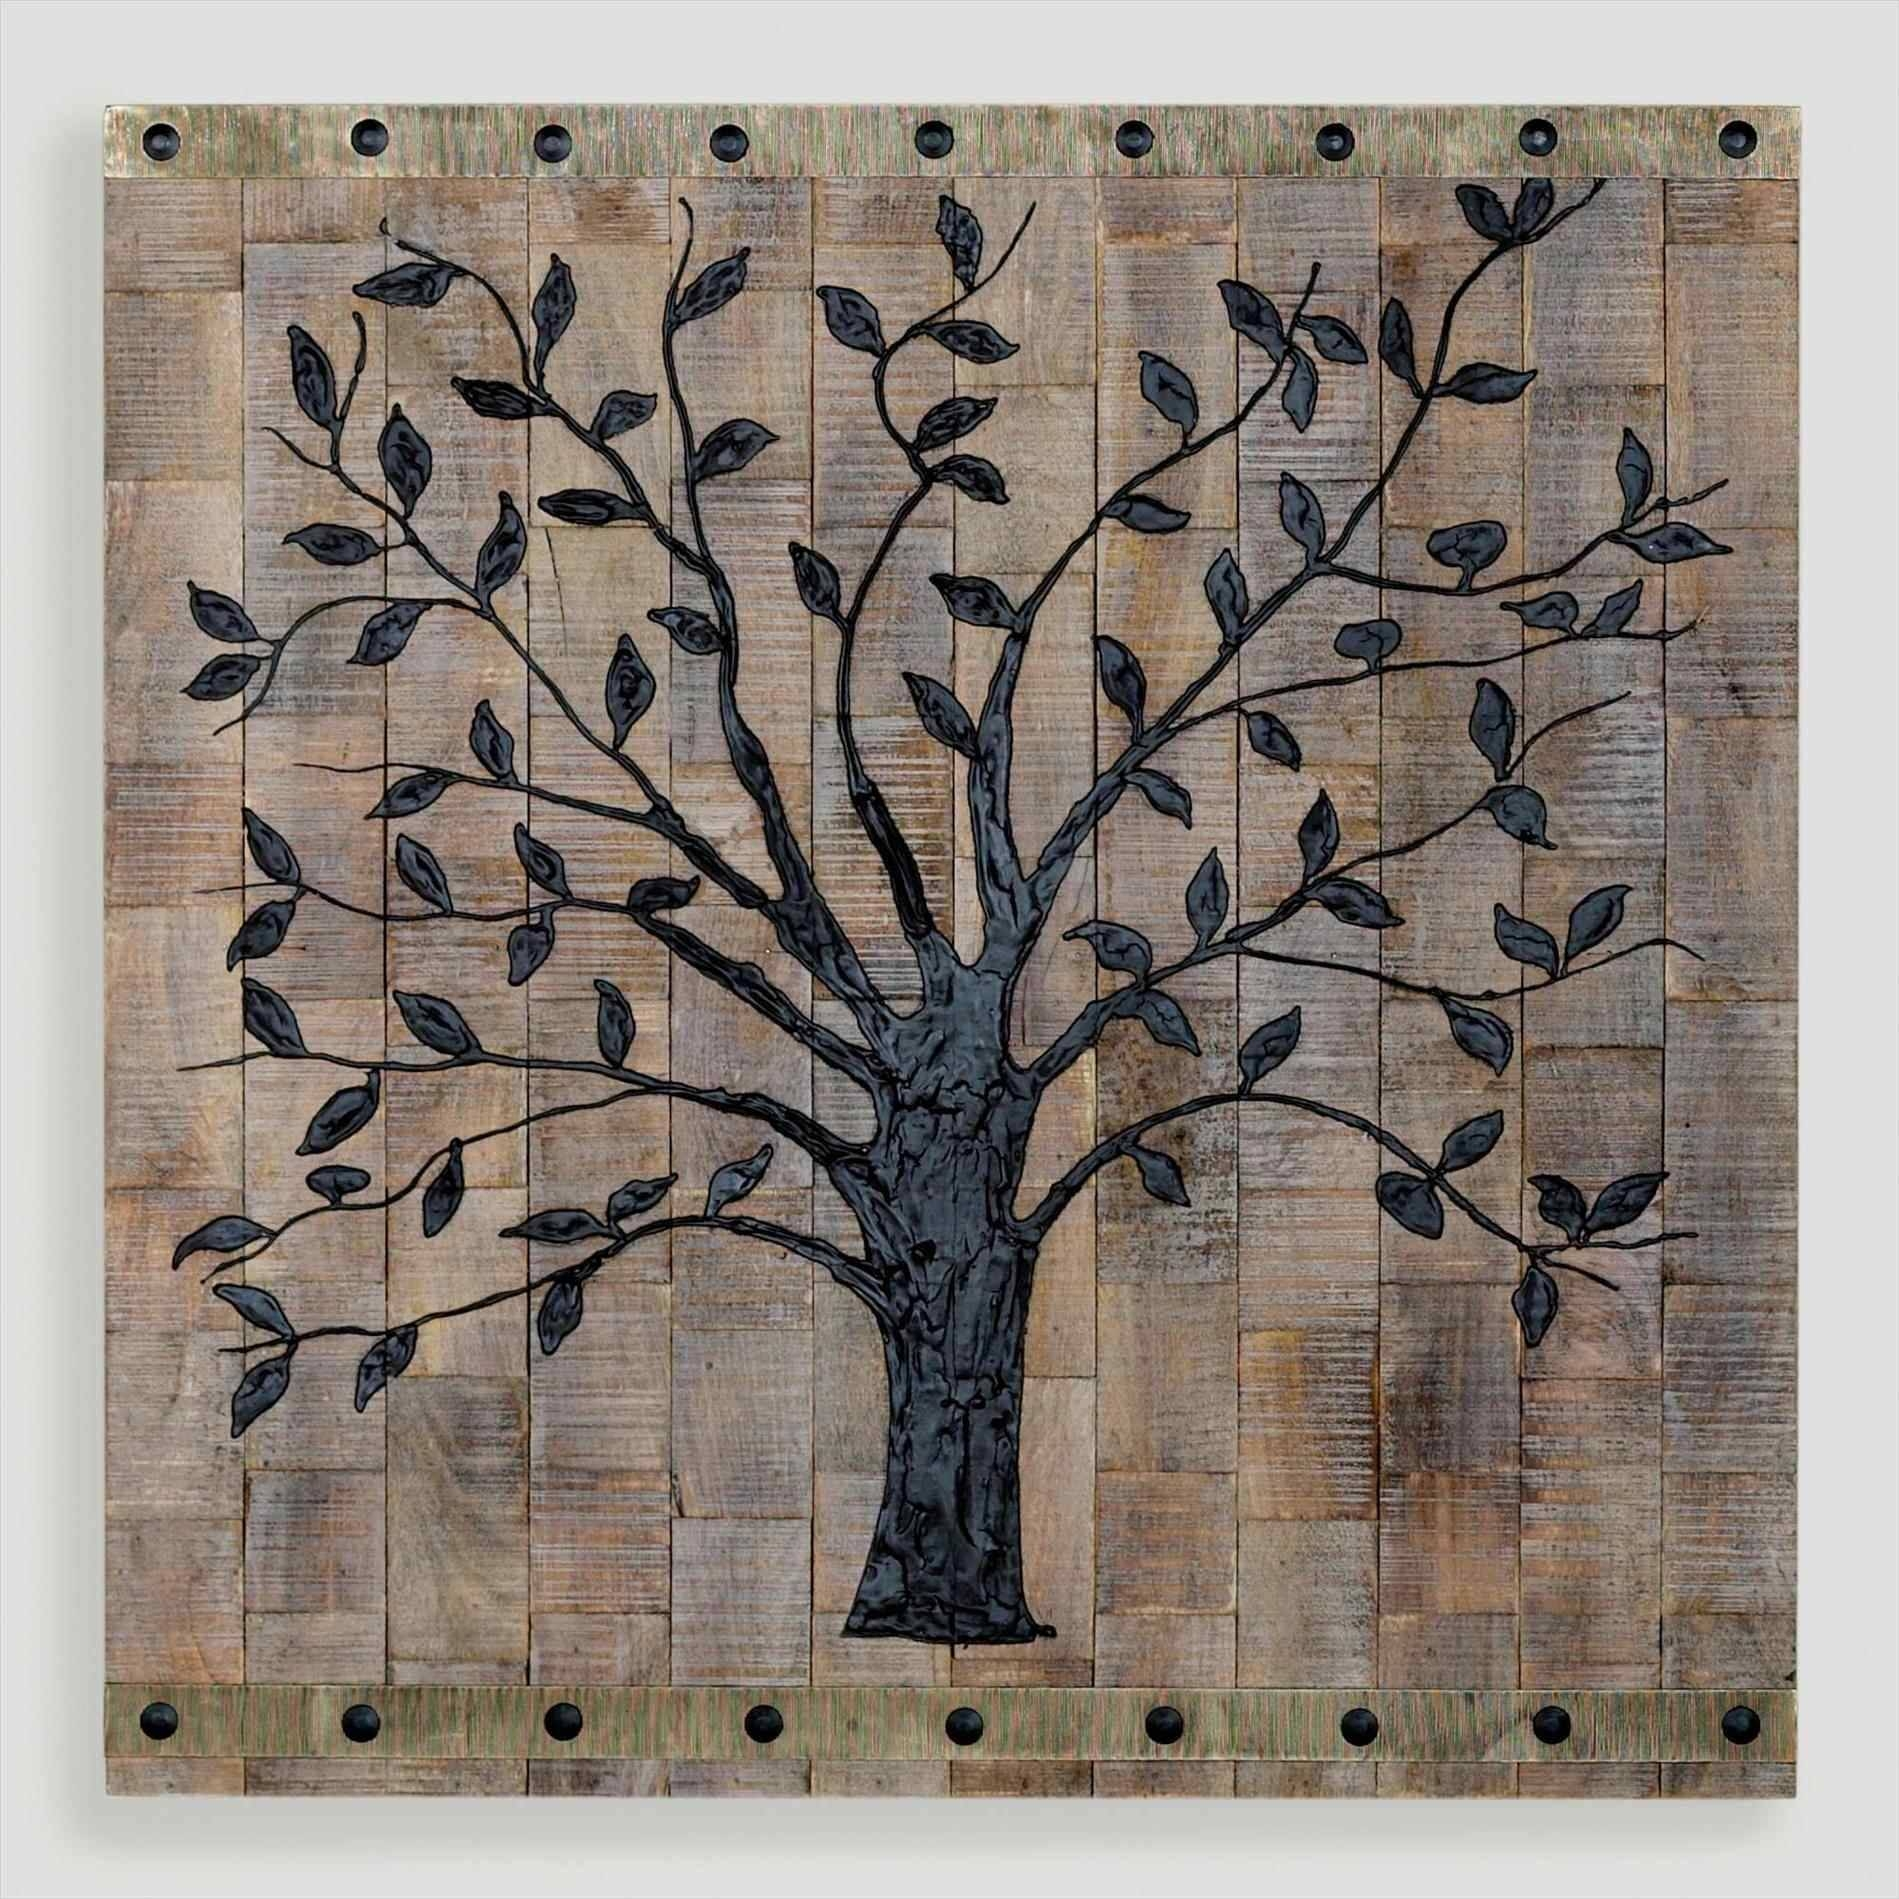 Tree Of Life Ideal Size Of A 48: 30 Best Celtic Tree Of Life Wall Art